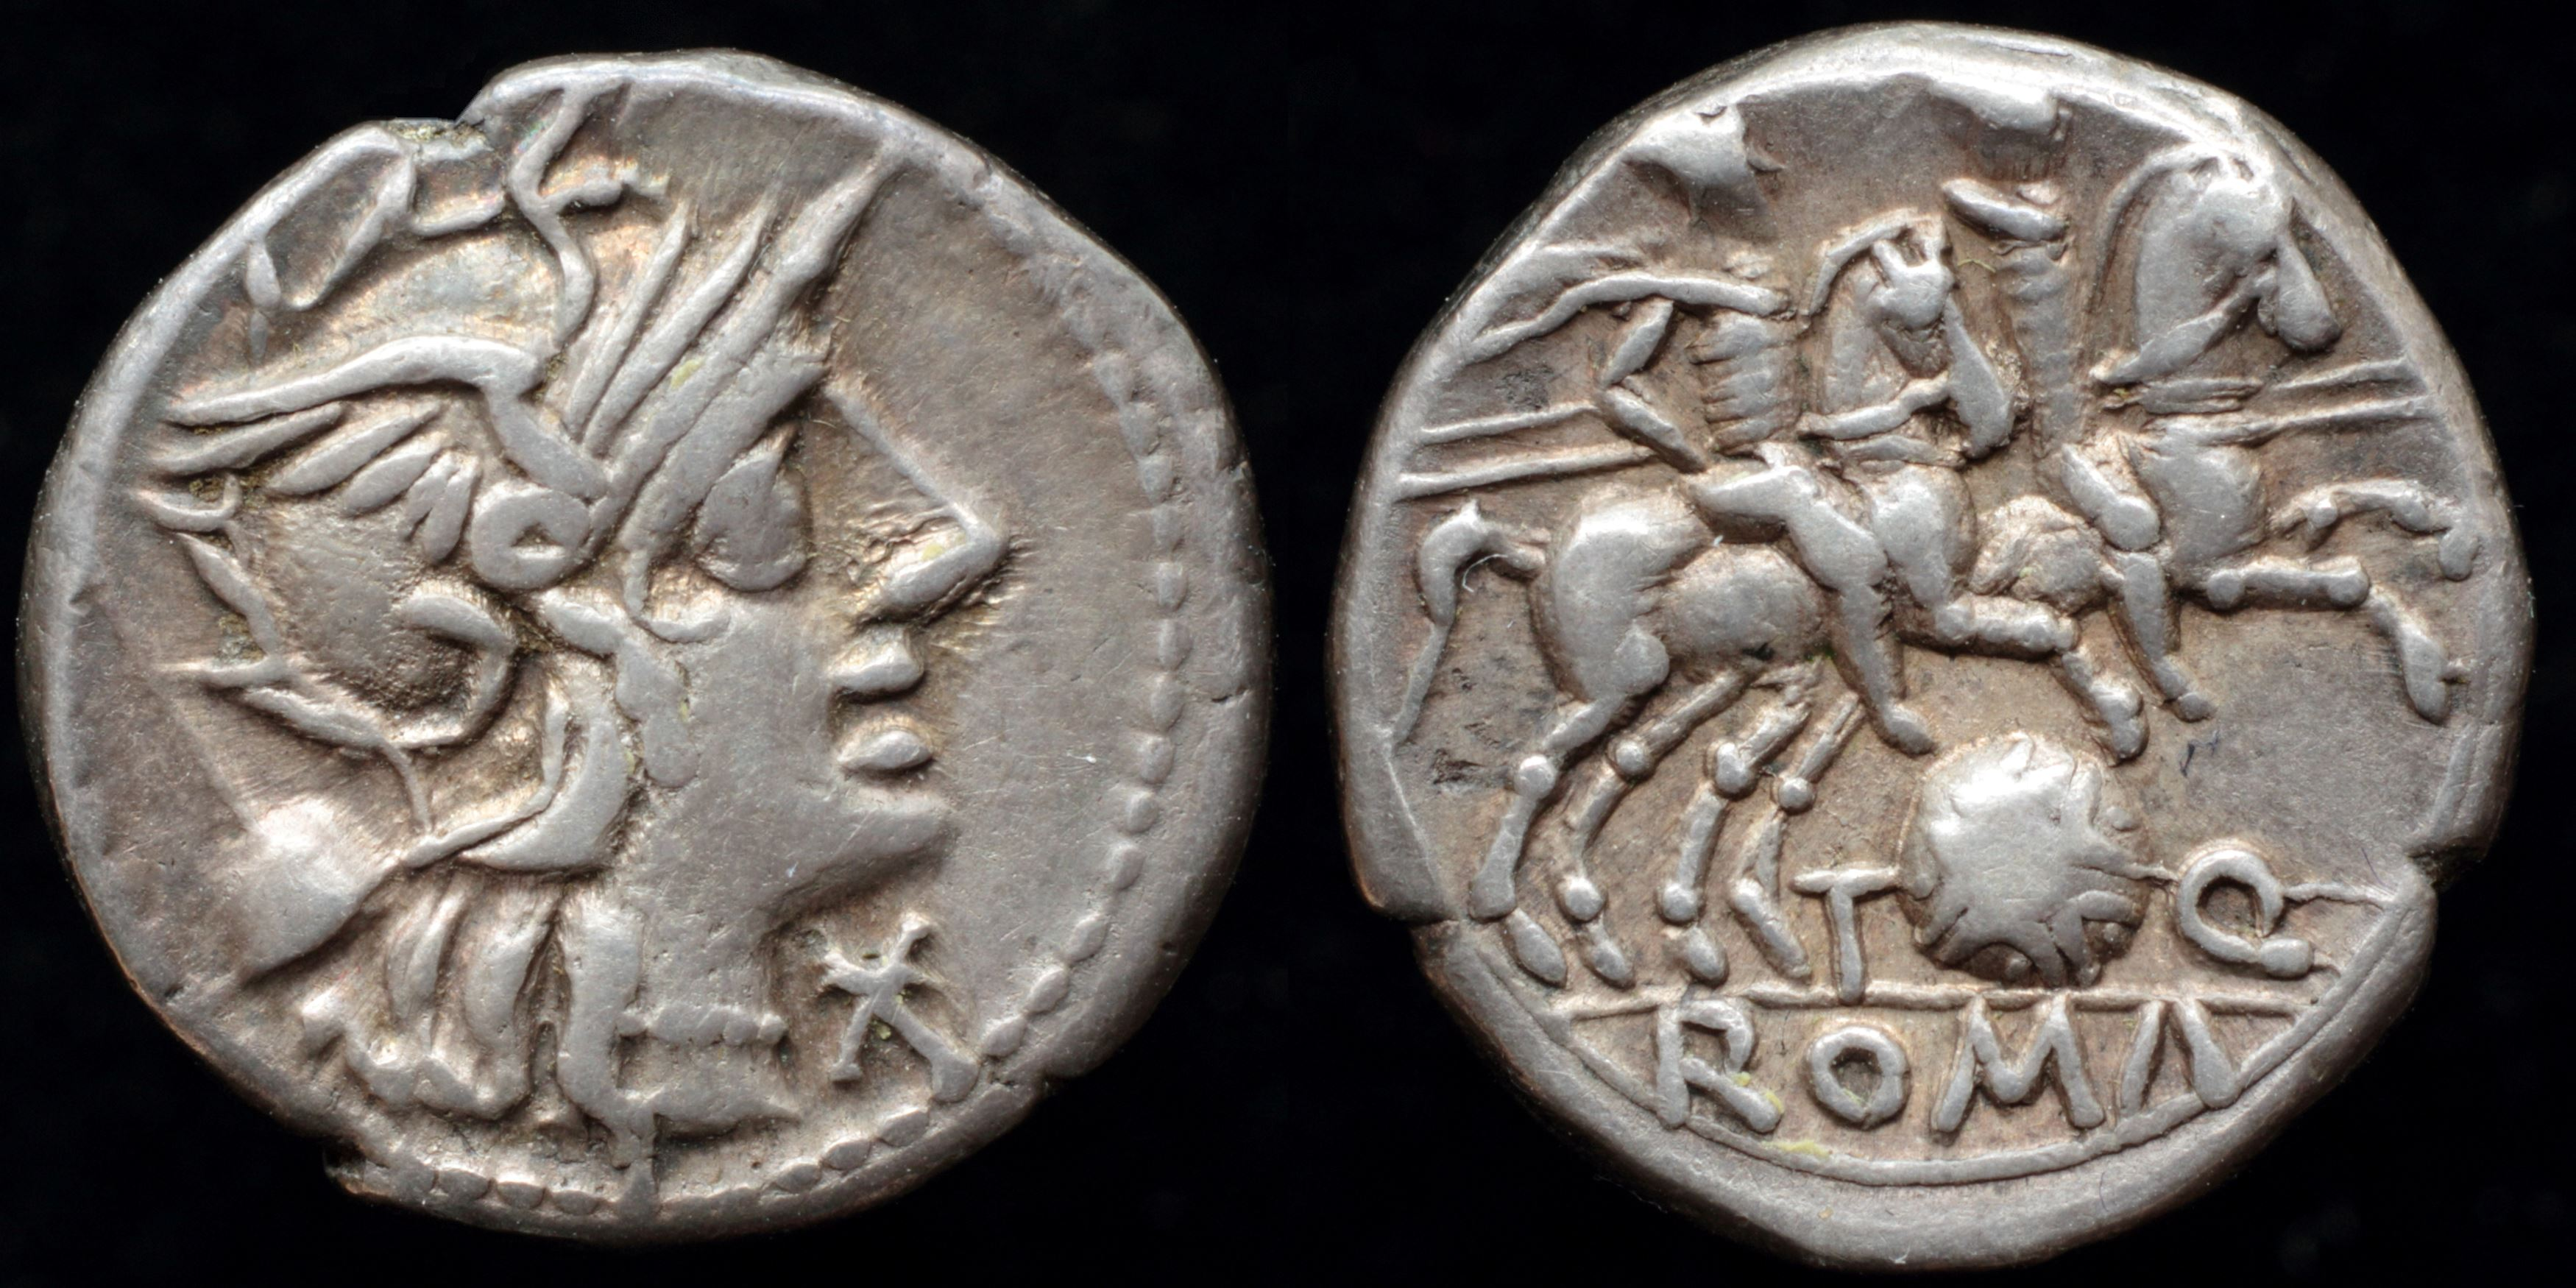 /Files/Images/Coinsite/CoinDB/T_Quinctius_Flamininus.jpg